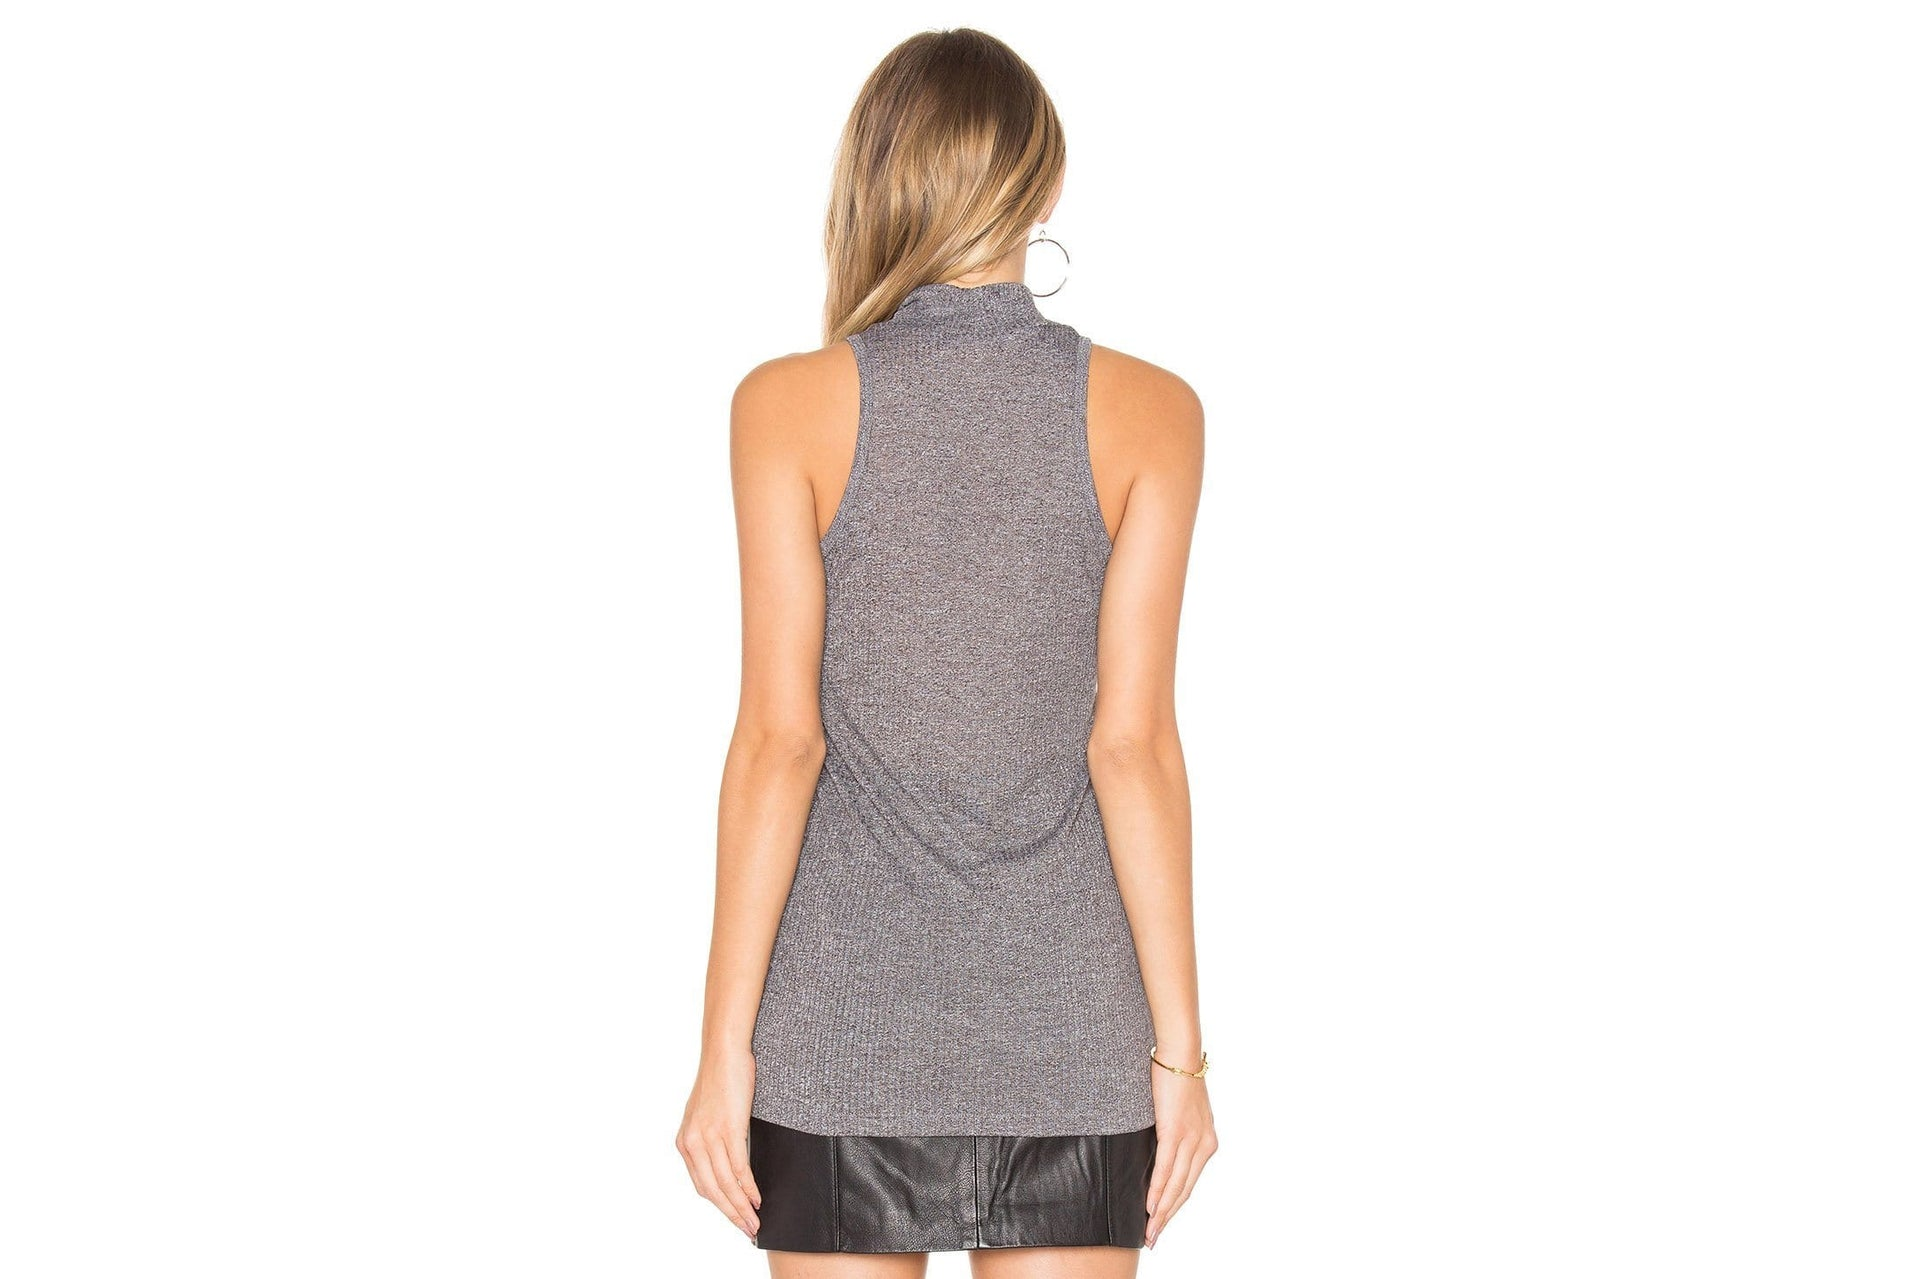 WESTLING MOCK NECK TANK WOMENS SOFTGOODS OBEY